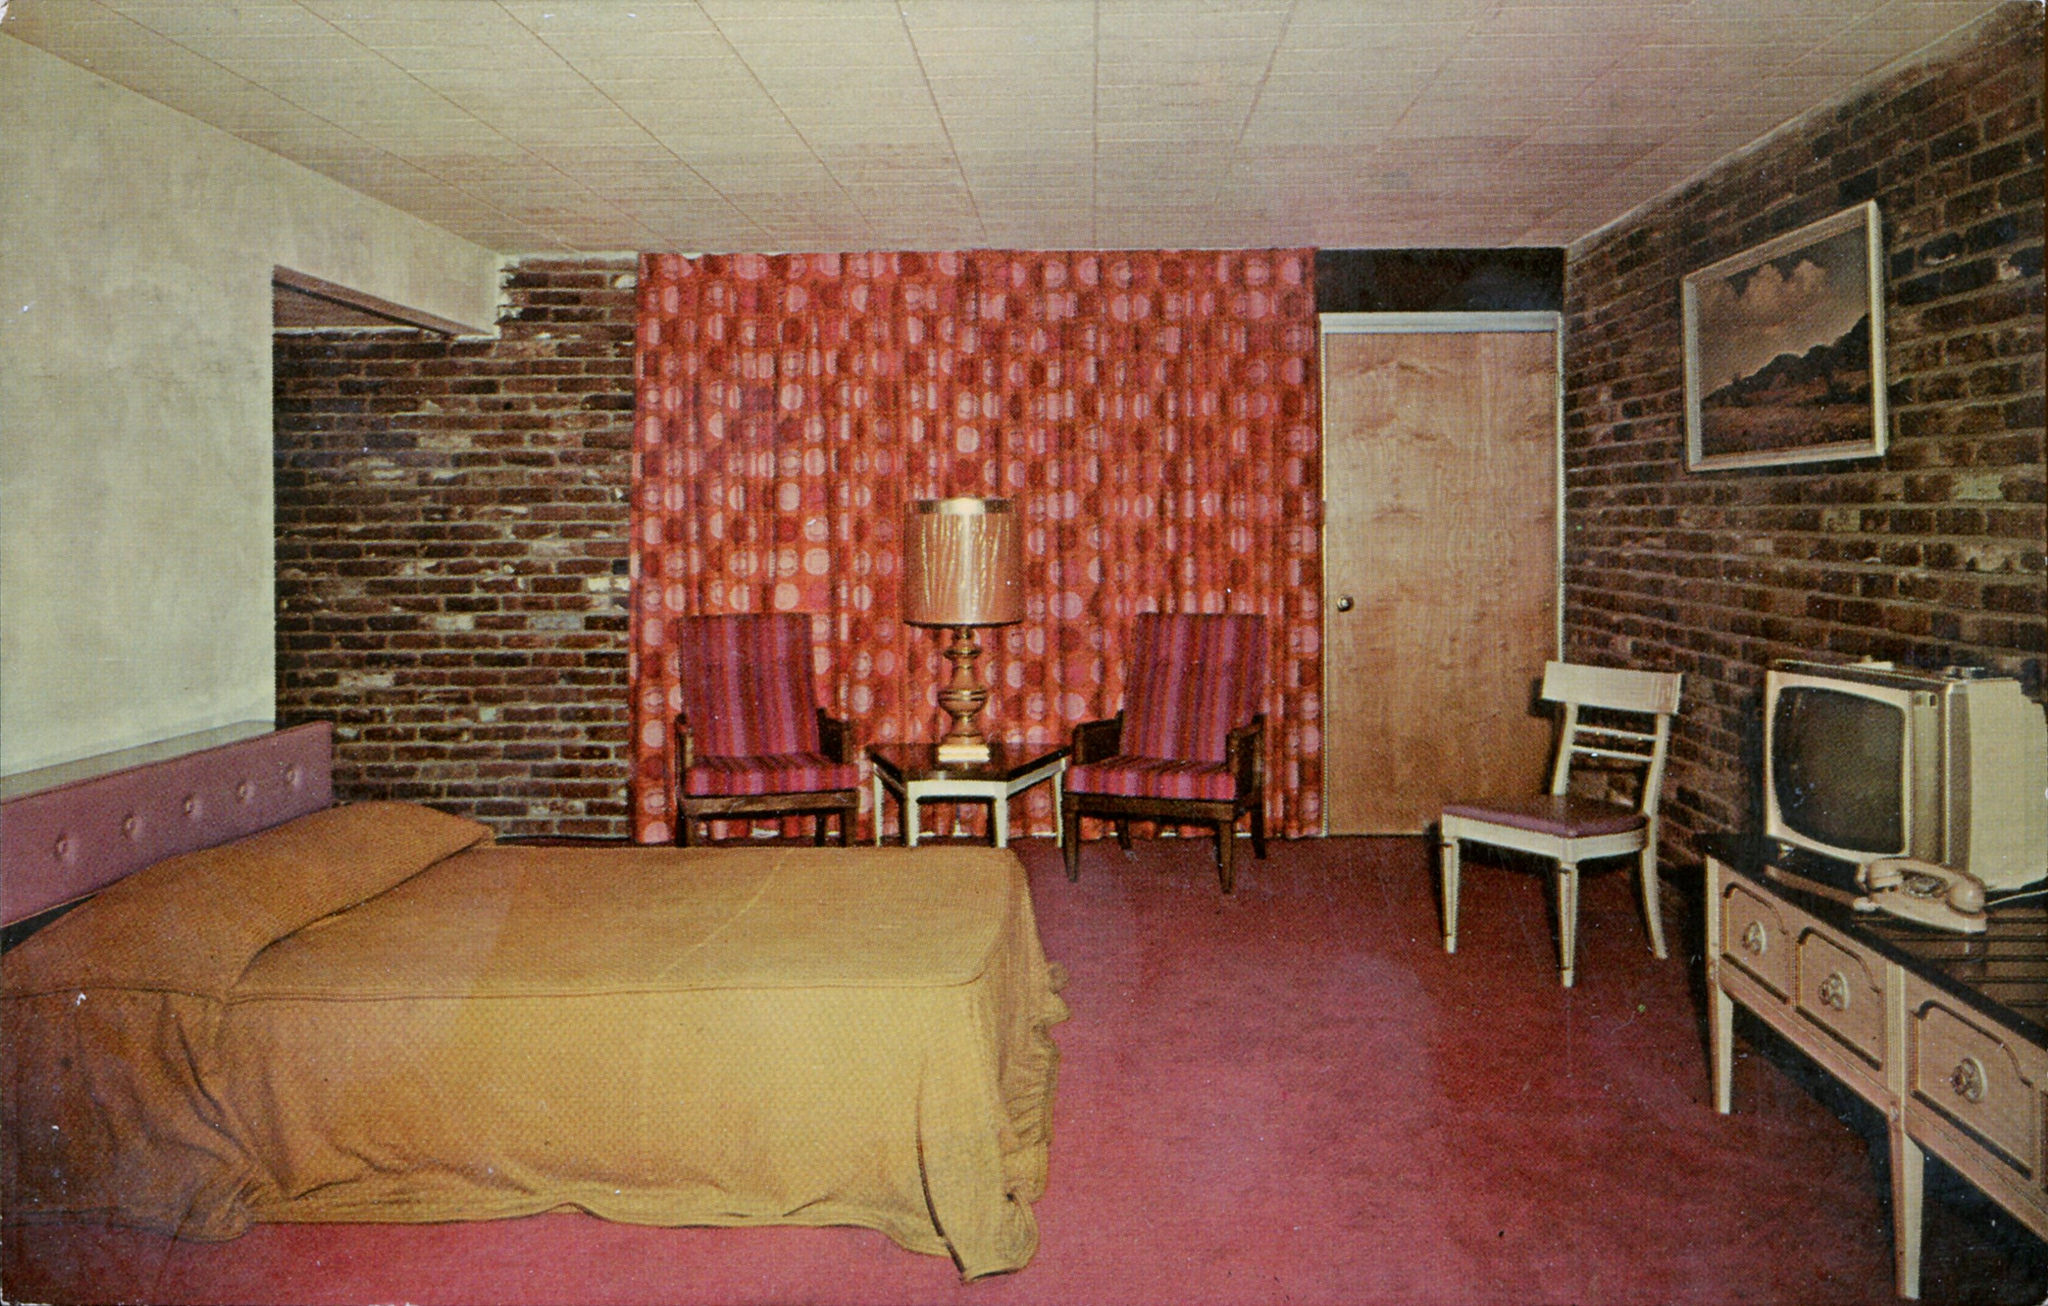 Postcards of Mid-Century Motel Rooms With Style - Flashbak